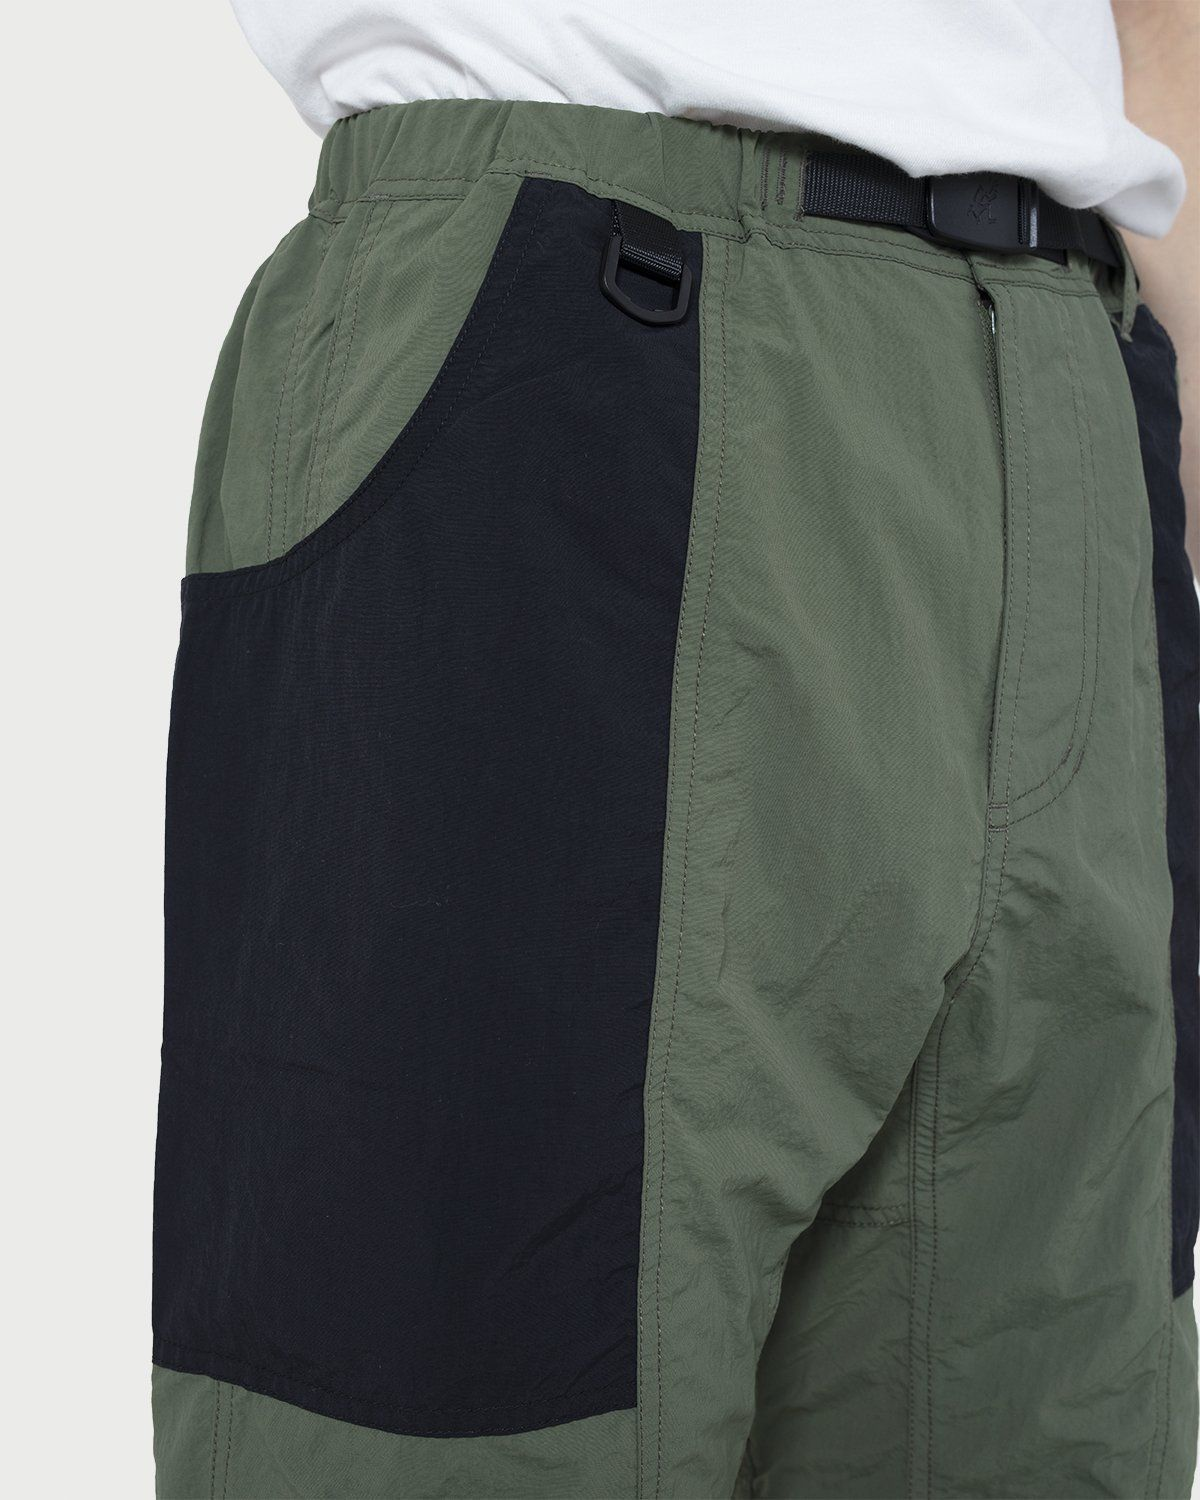 Gramicci - Shell Gear Shorts Olive/Black - Image 2